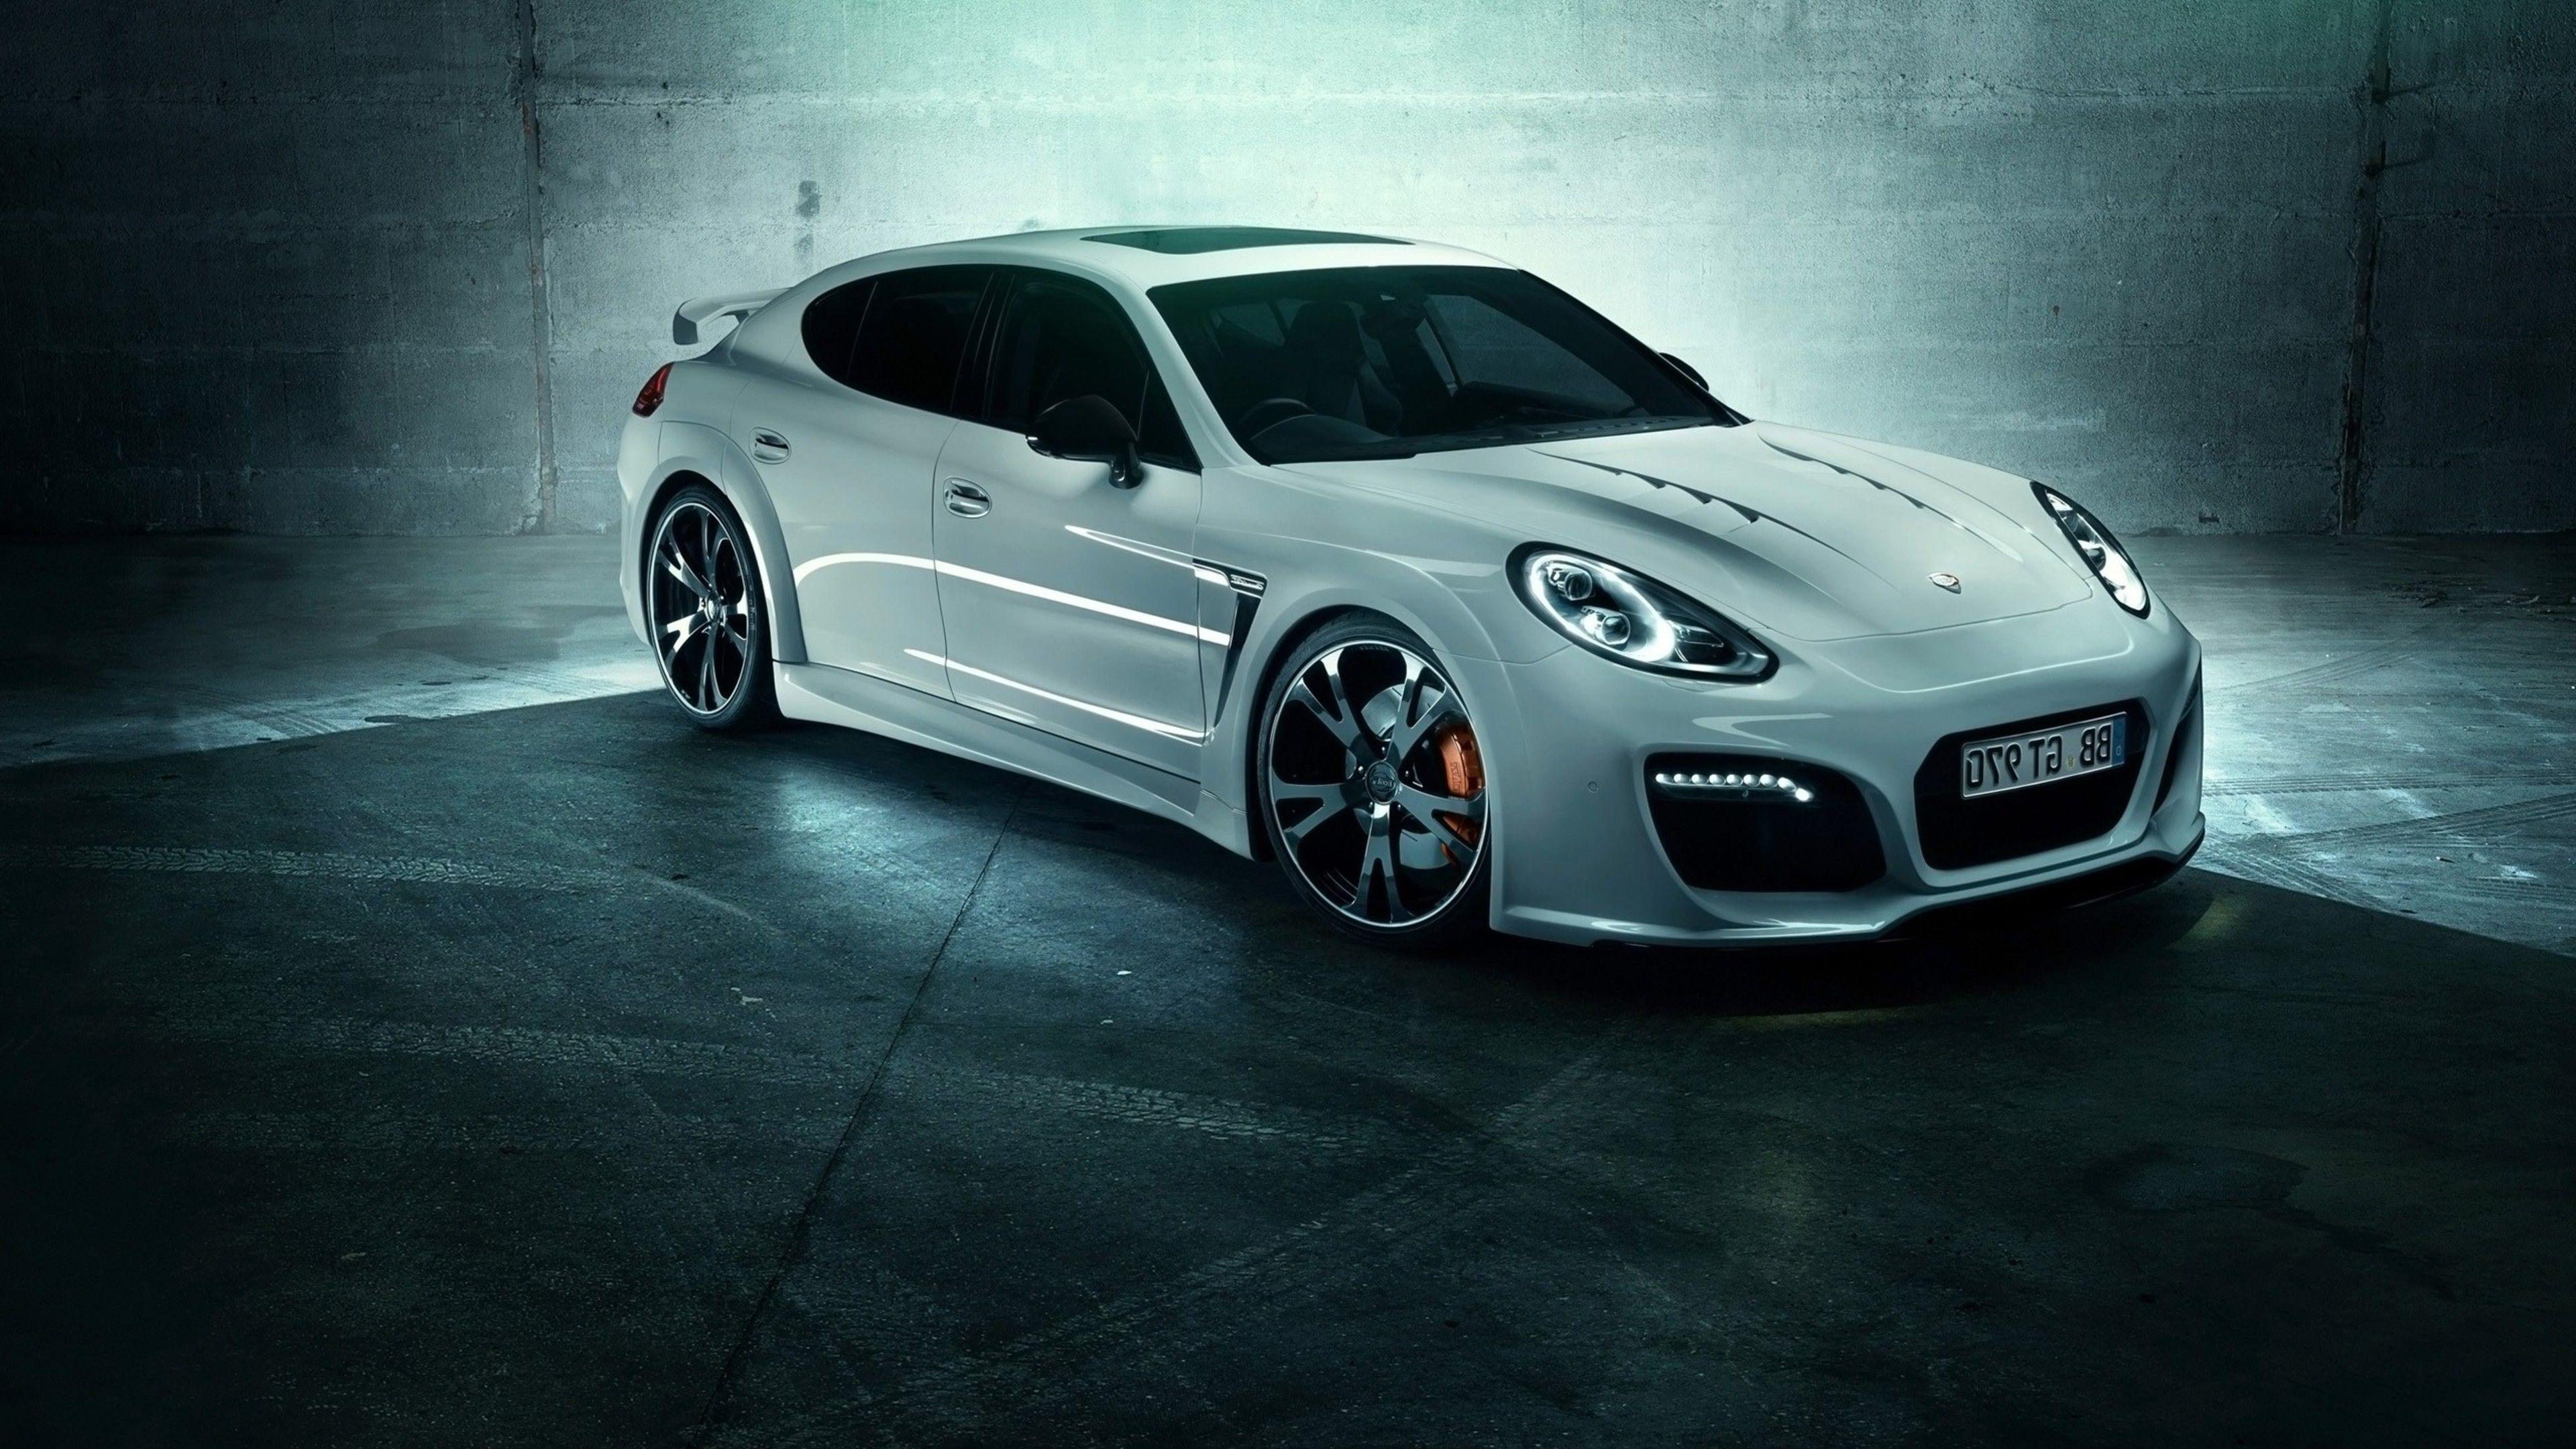 Porsche Panamera Turbo, HD Cars, 4k Wallpapers, Image, Backgrounds